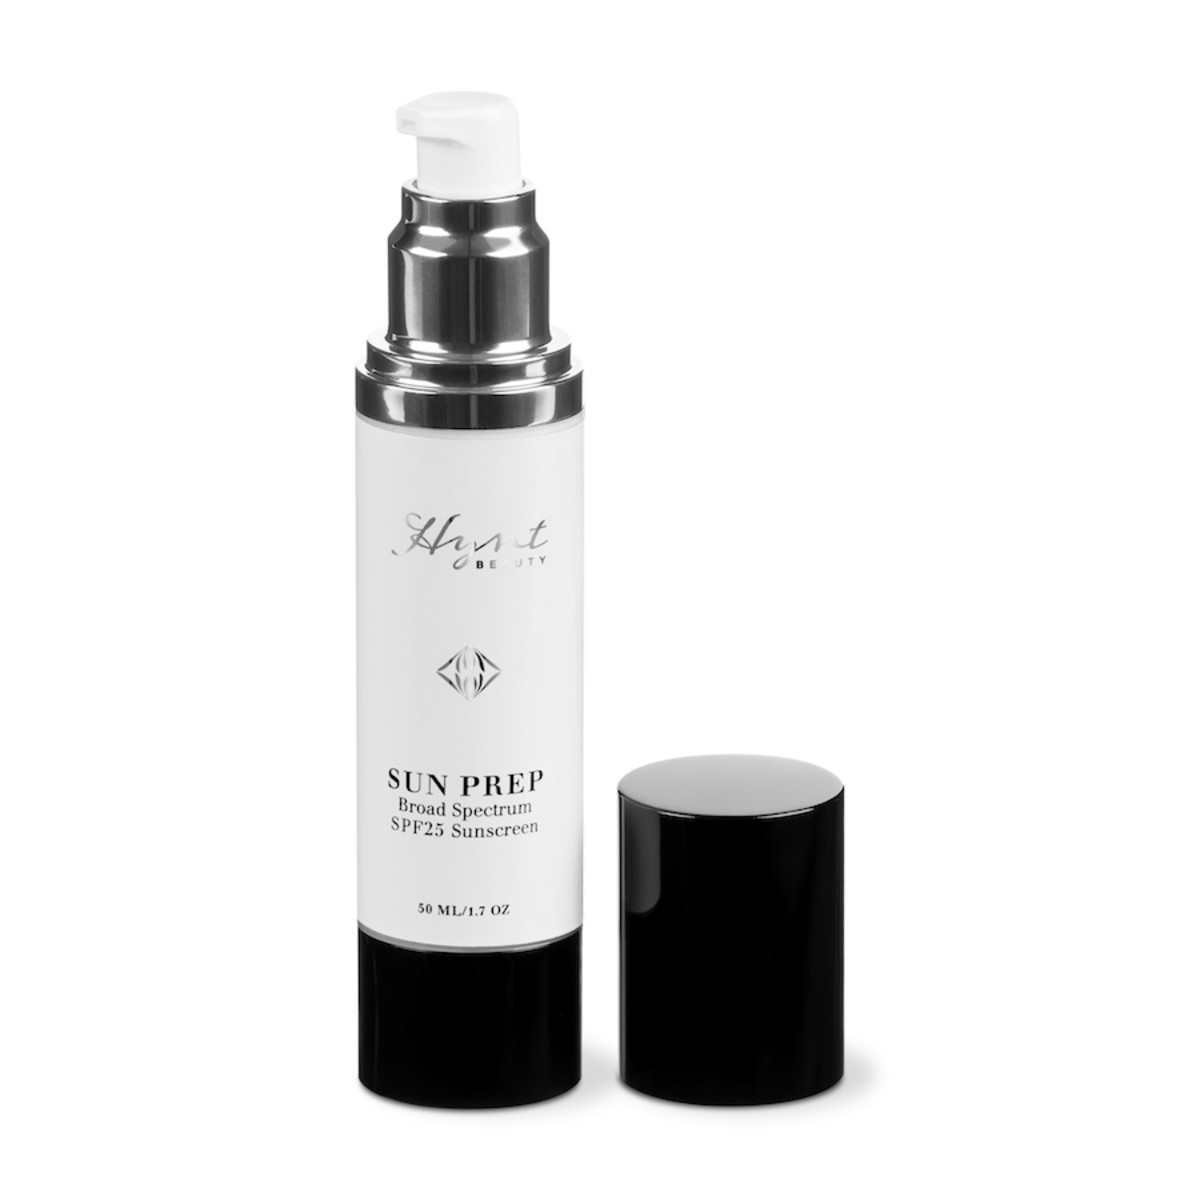 Hynt Beauty Sun Prep Broad Spectrum SPF 30